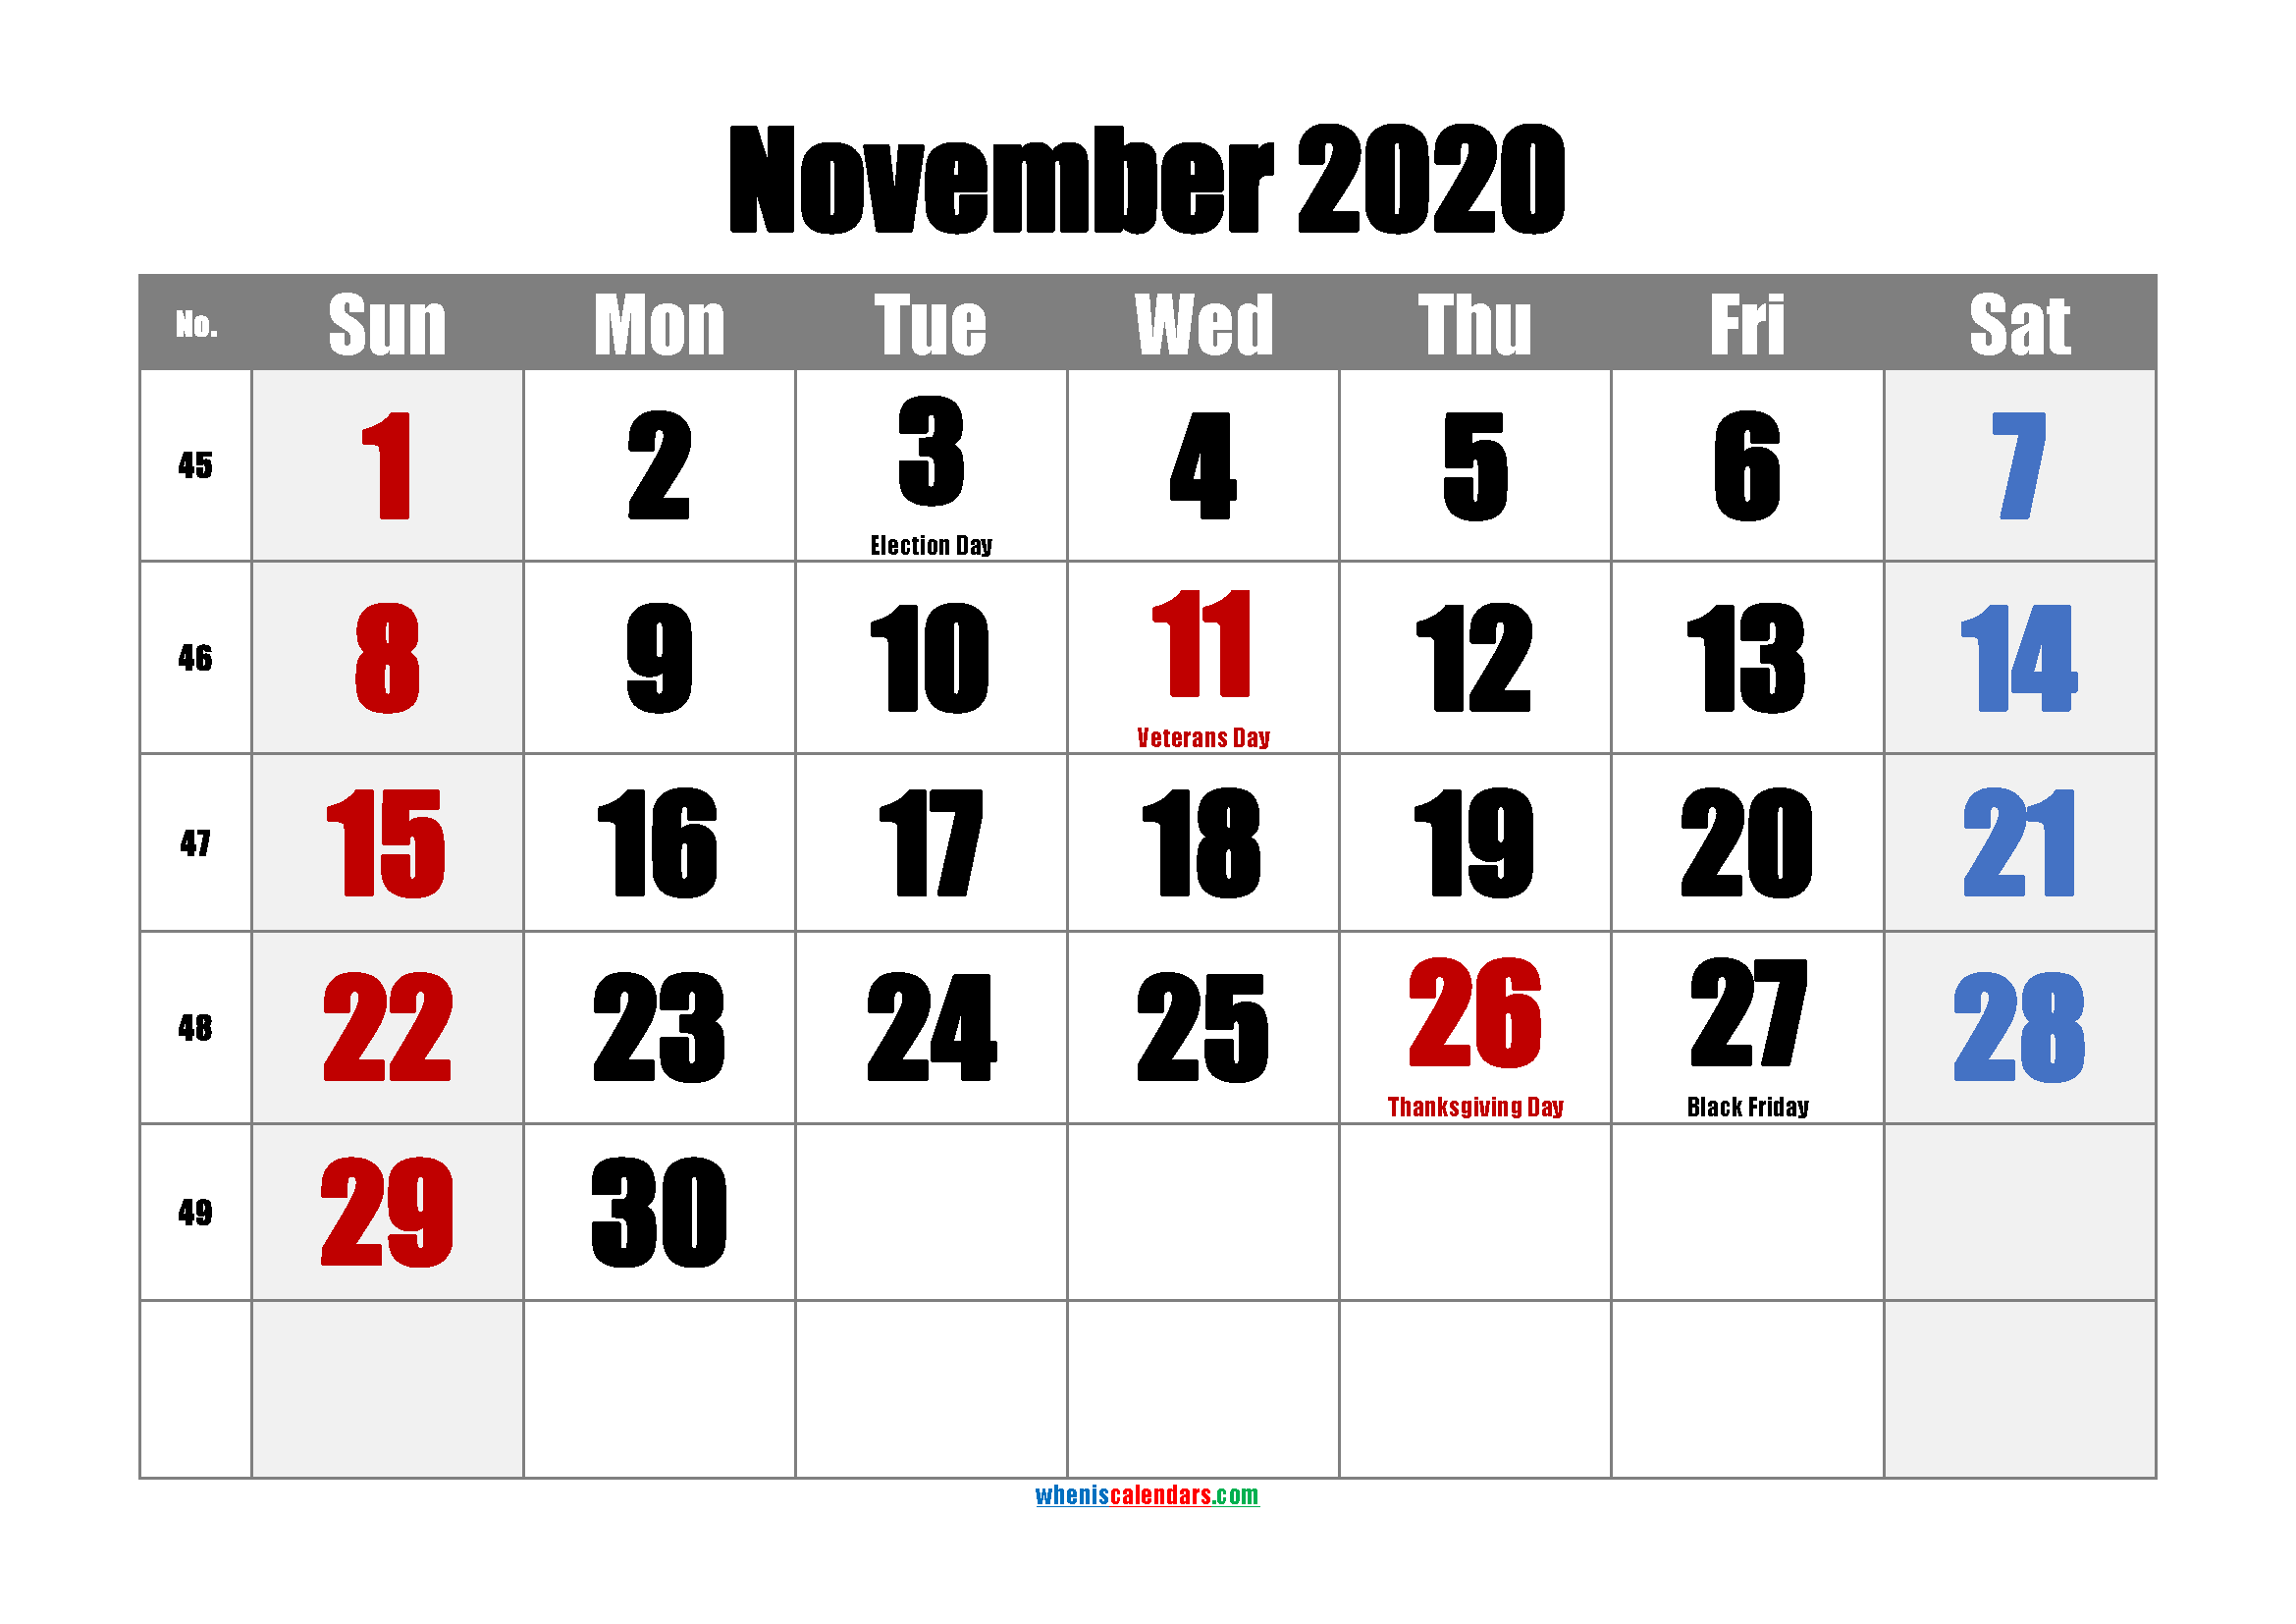 November 2020 Printable Calendar with Holidays